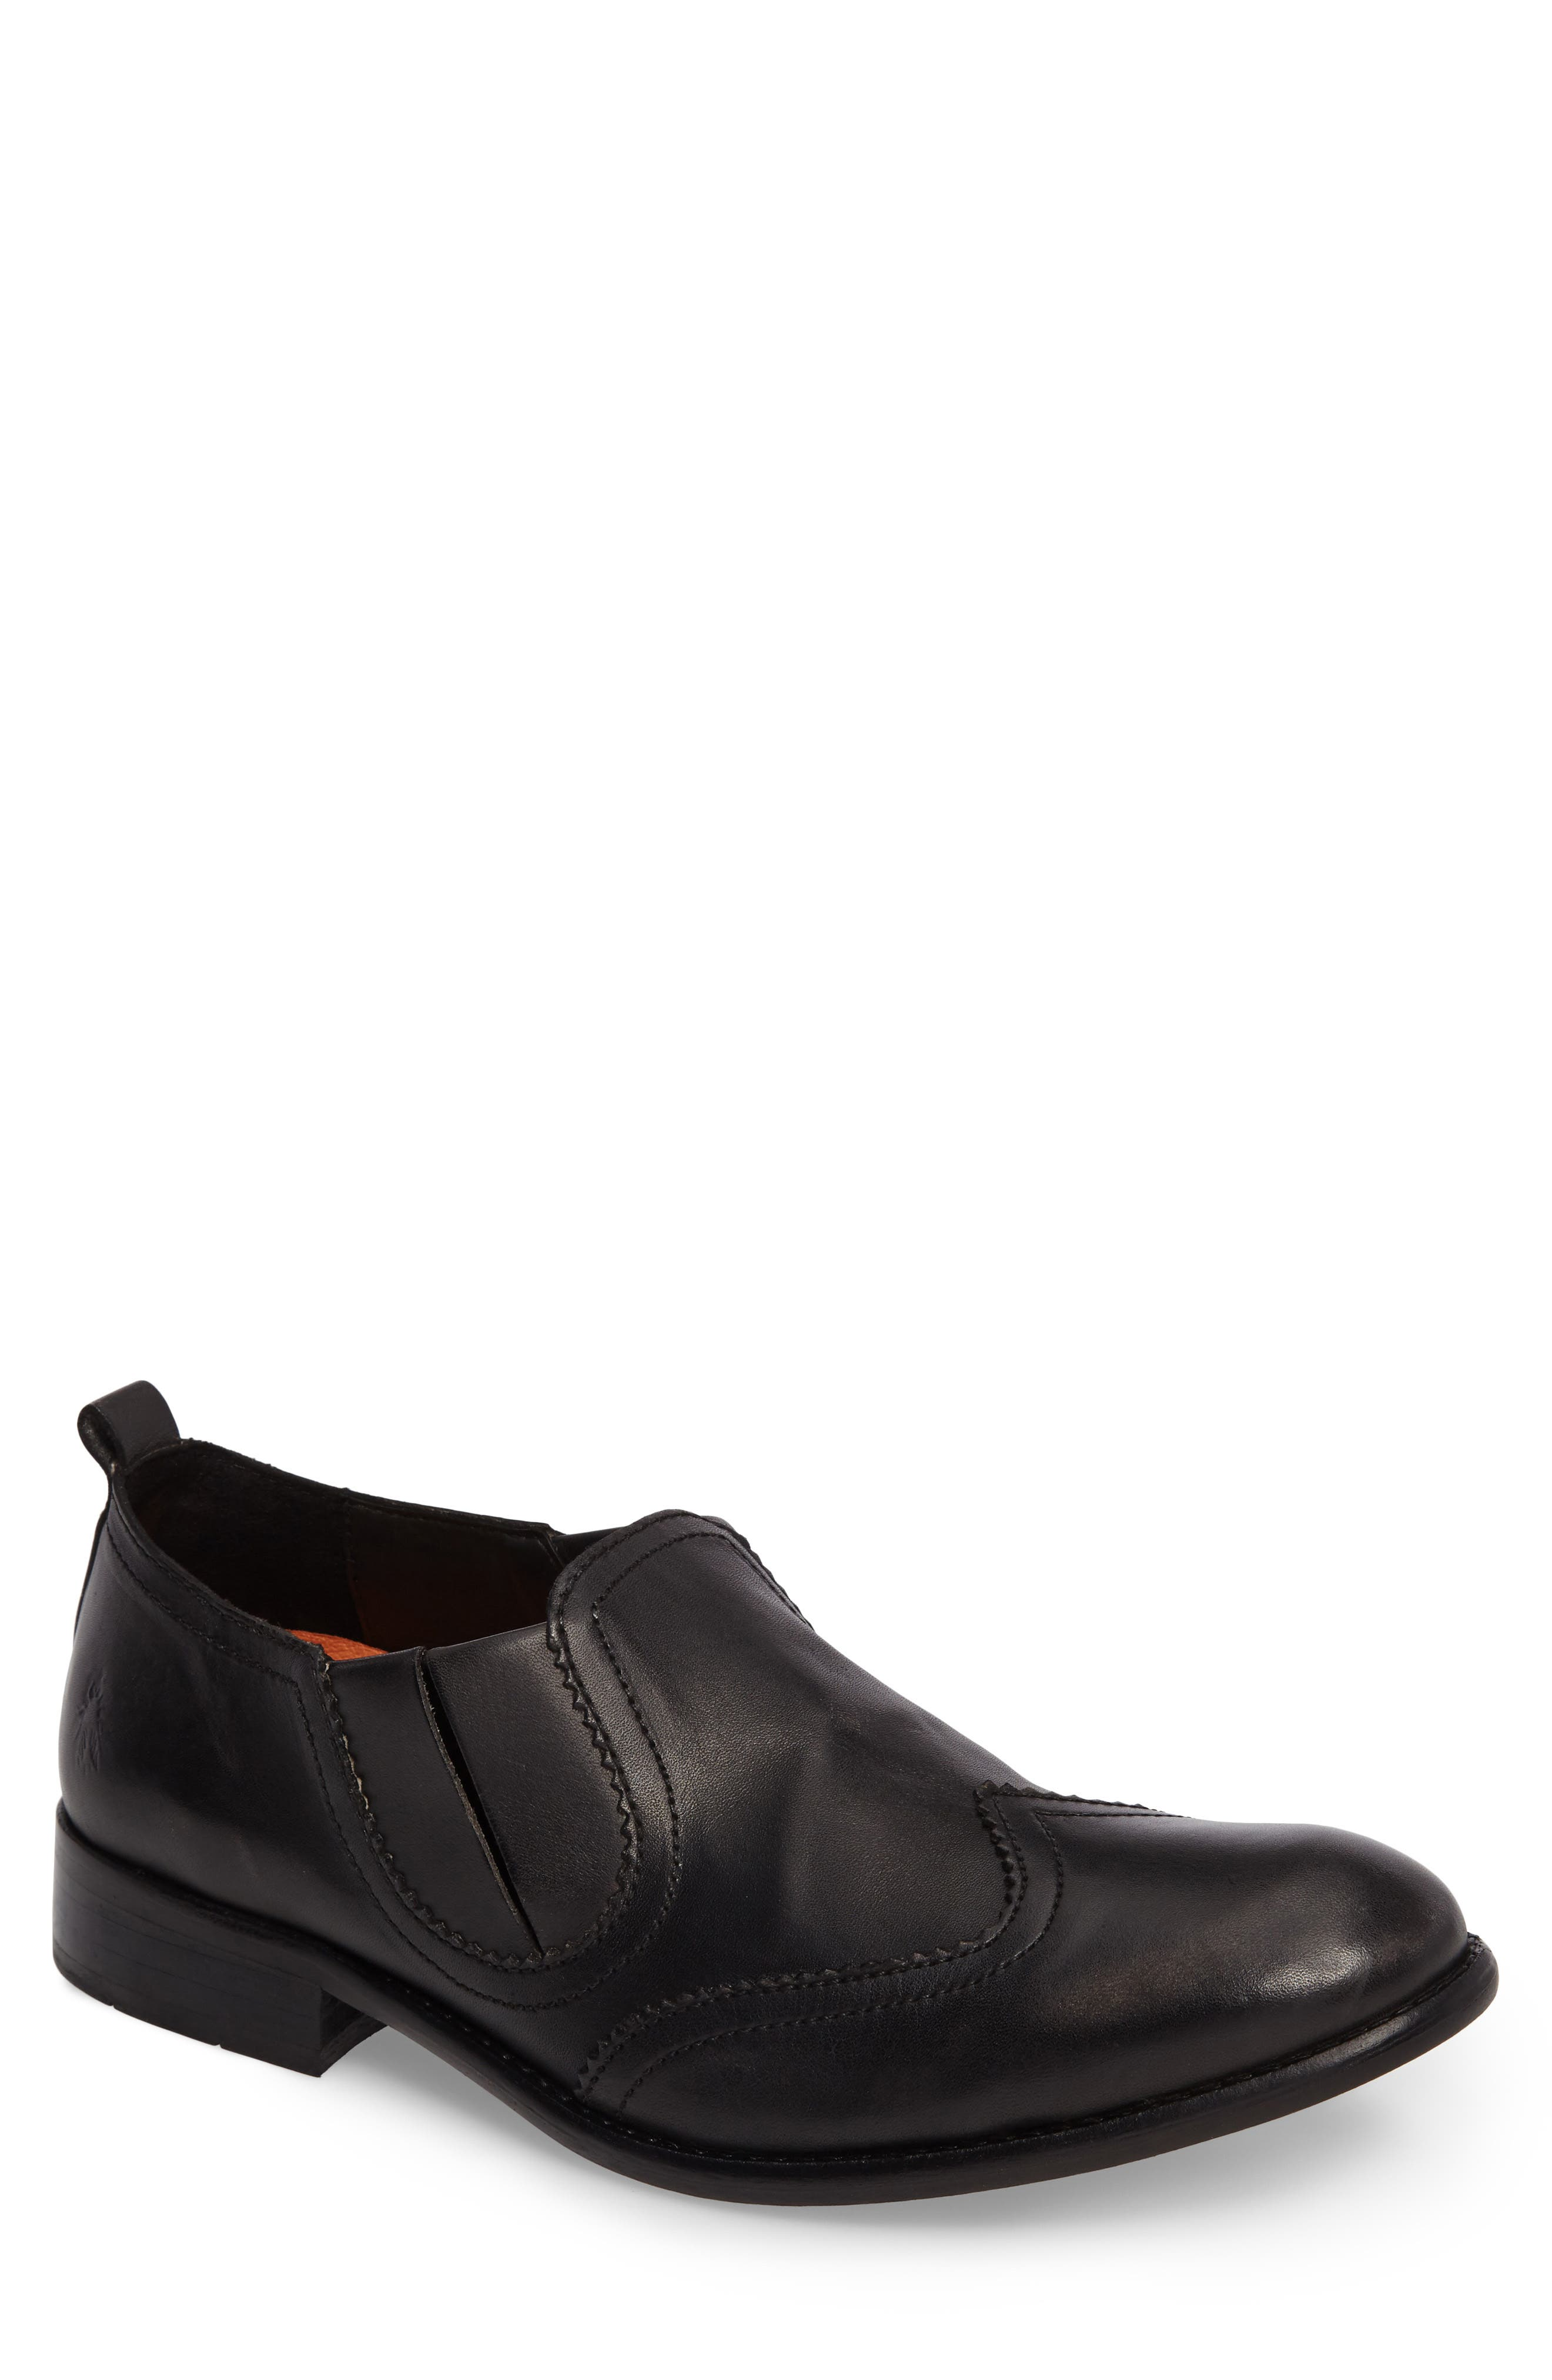 Wyat Wingtip Slip-On Loafer,                             Main thumbnail 1, color,                             001